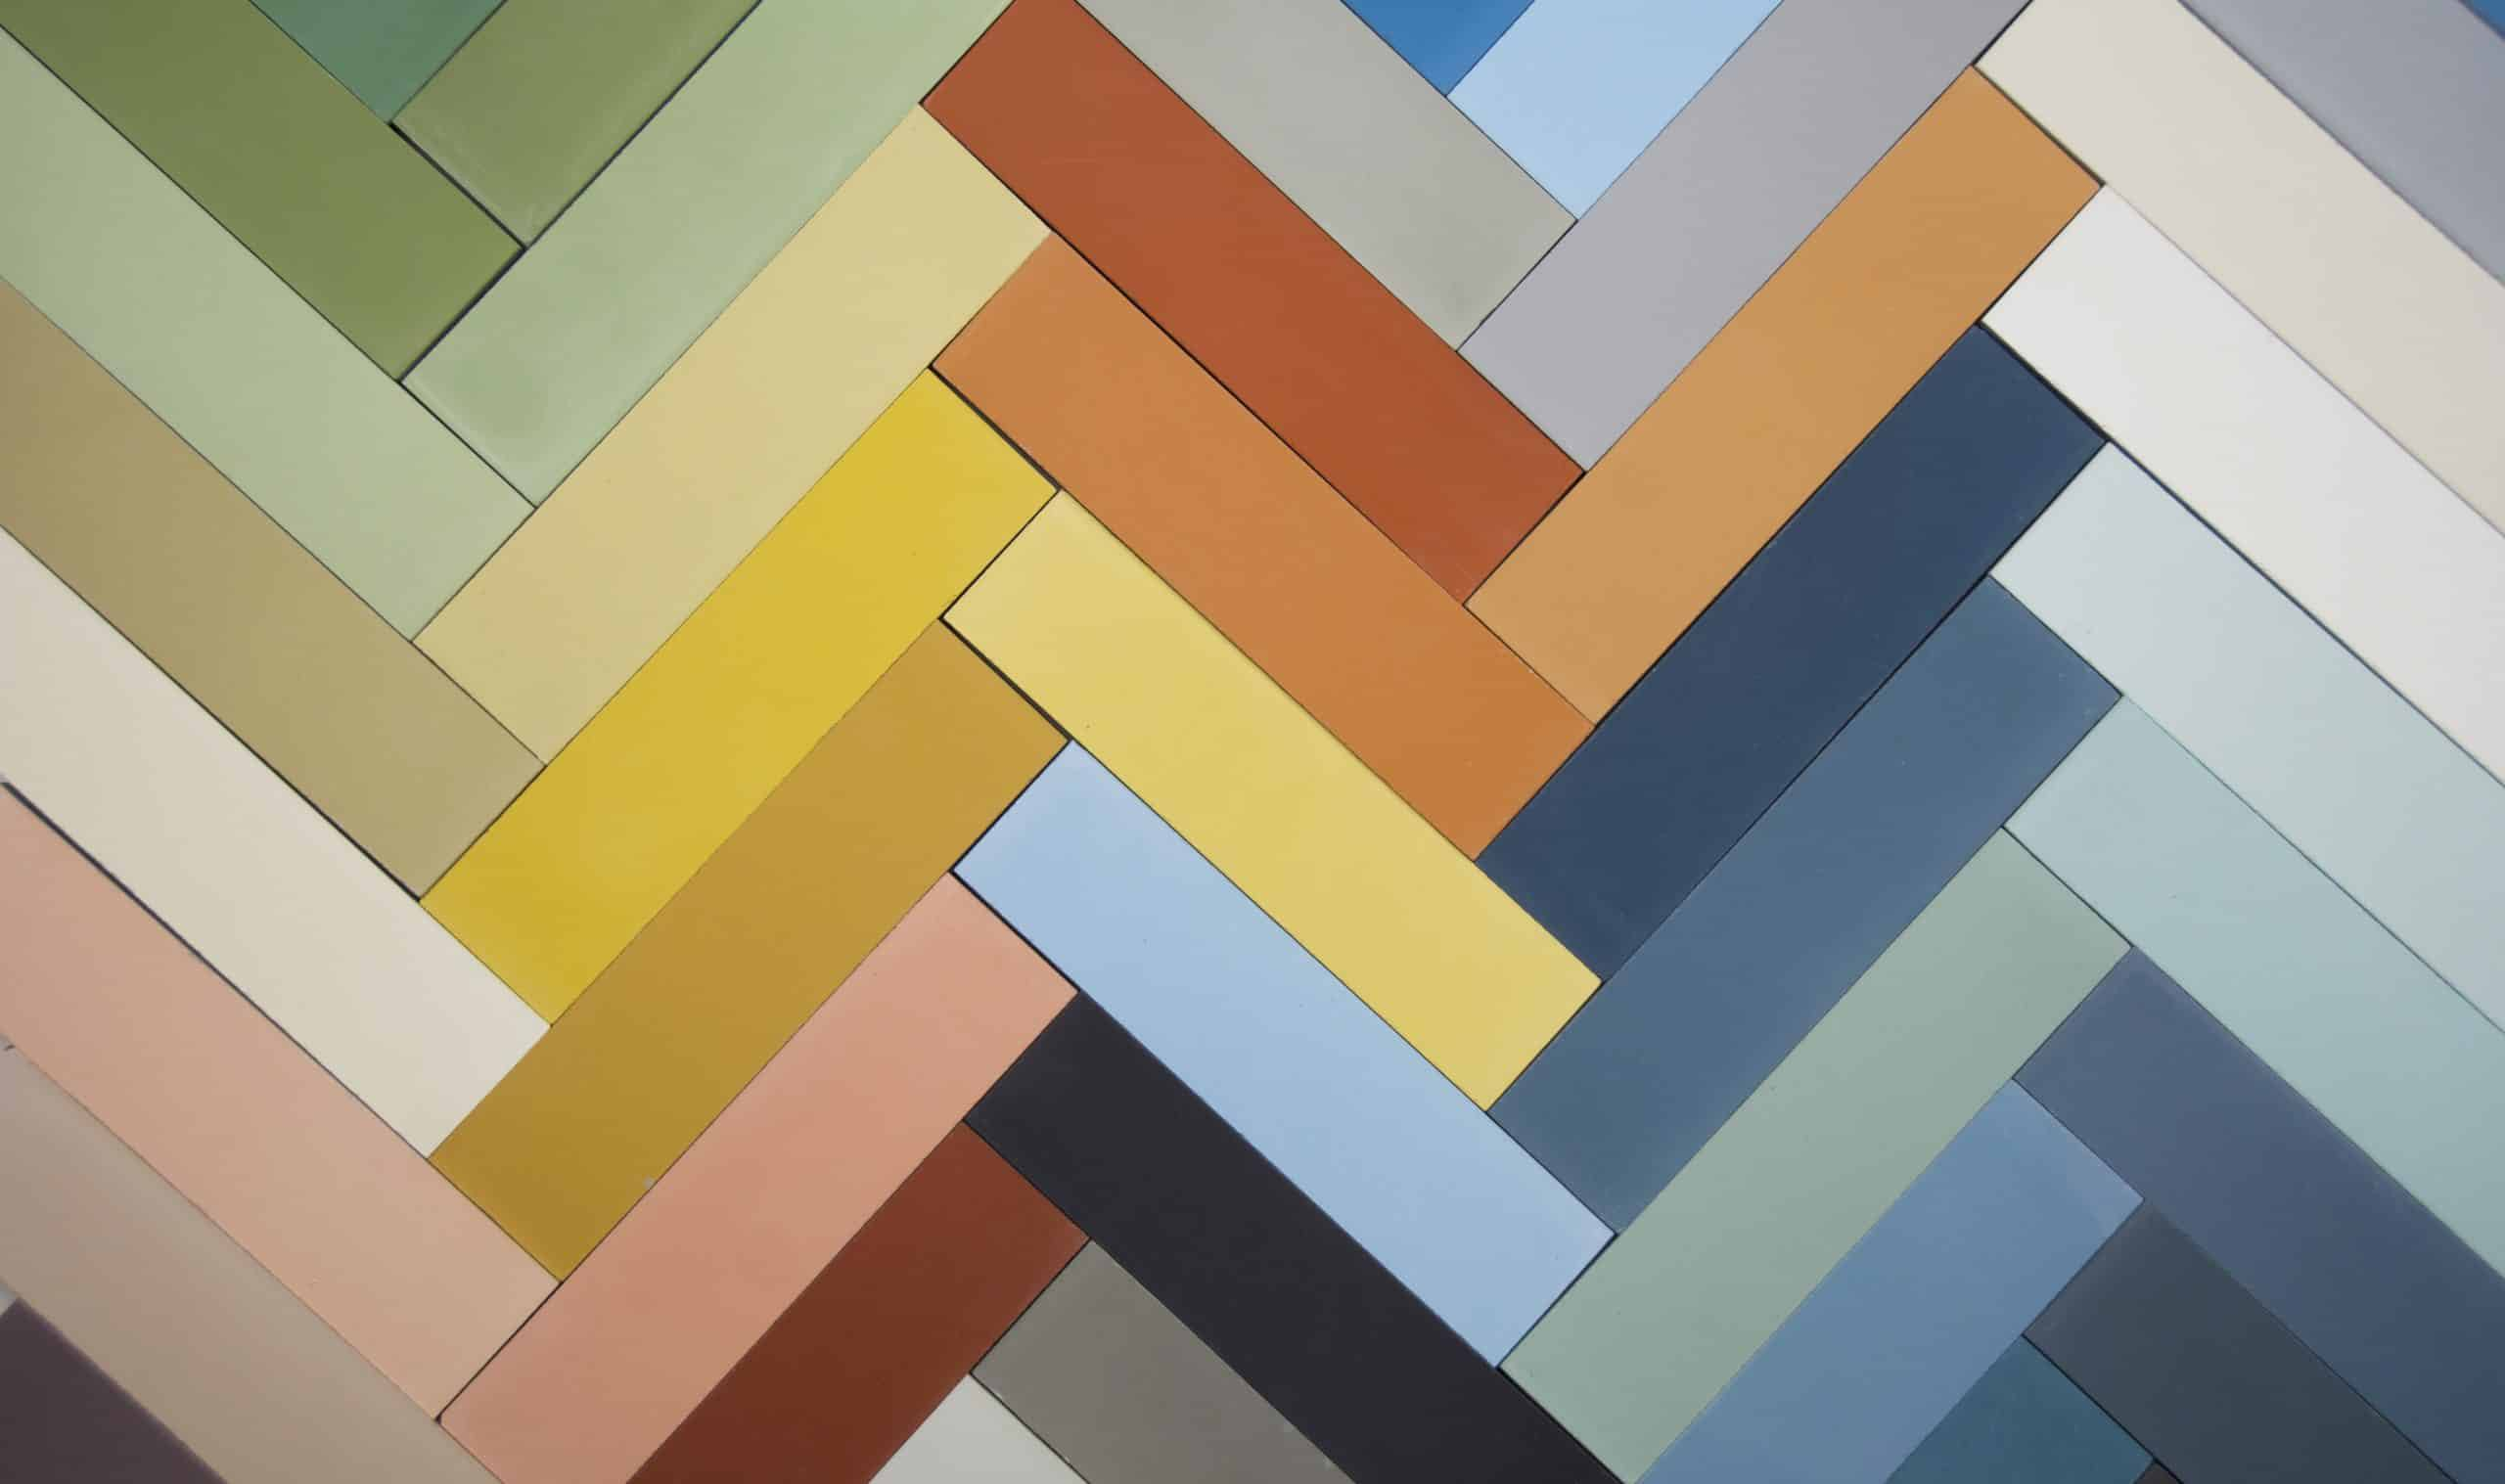 Solid 2x8 encaustic cement subway tile in wide color range from Zia Tile